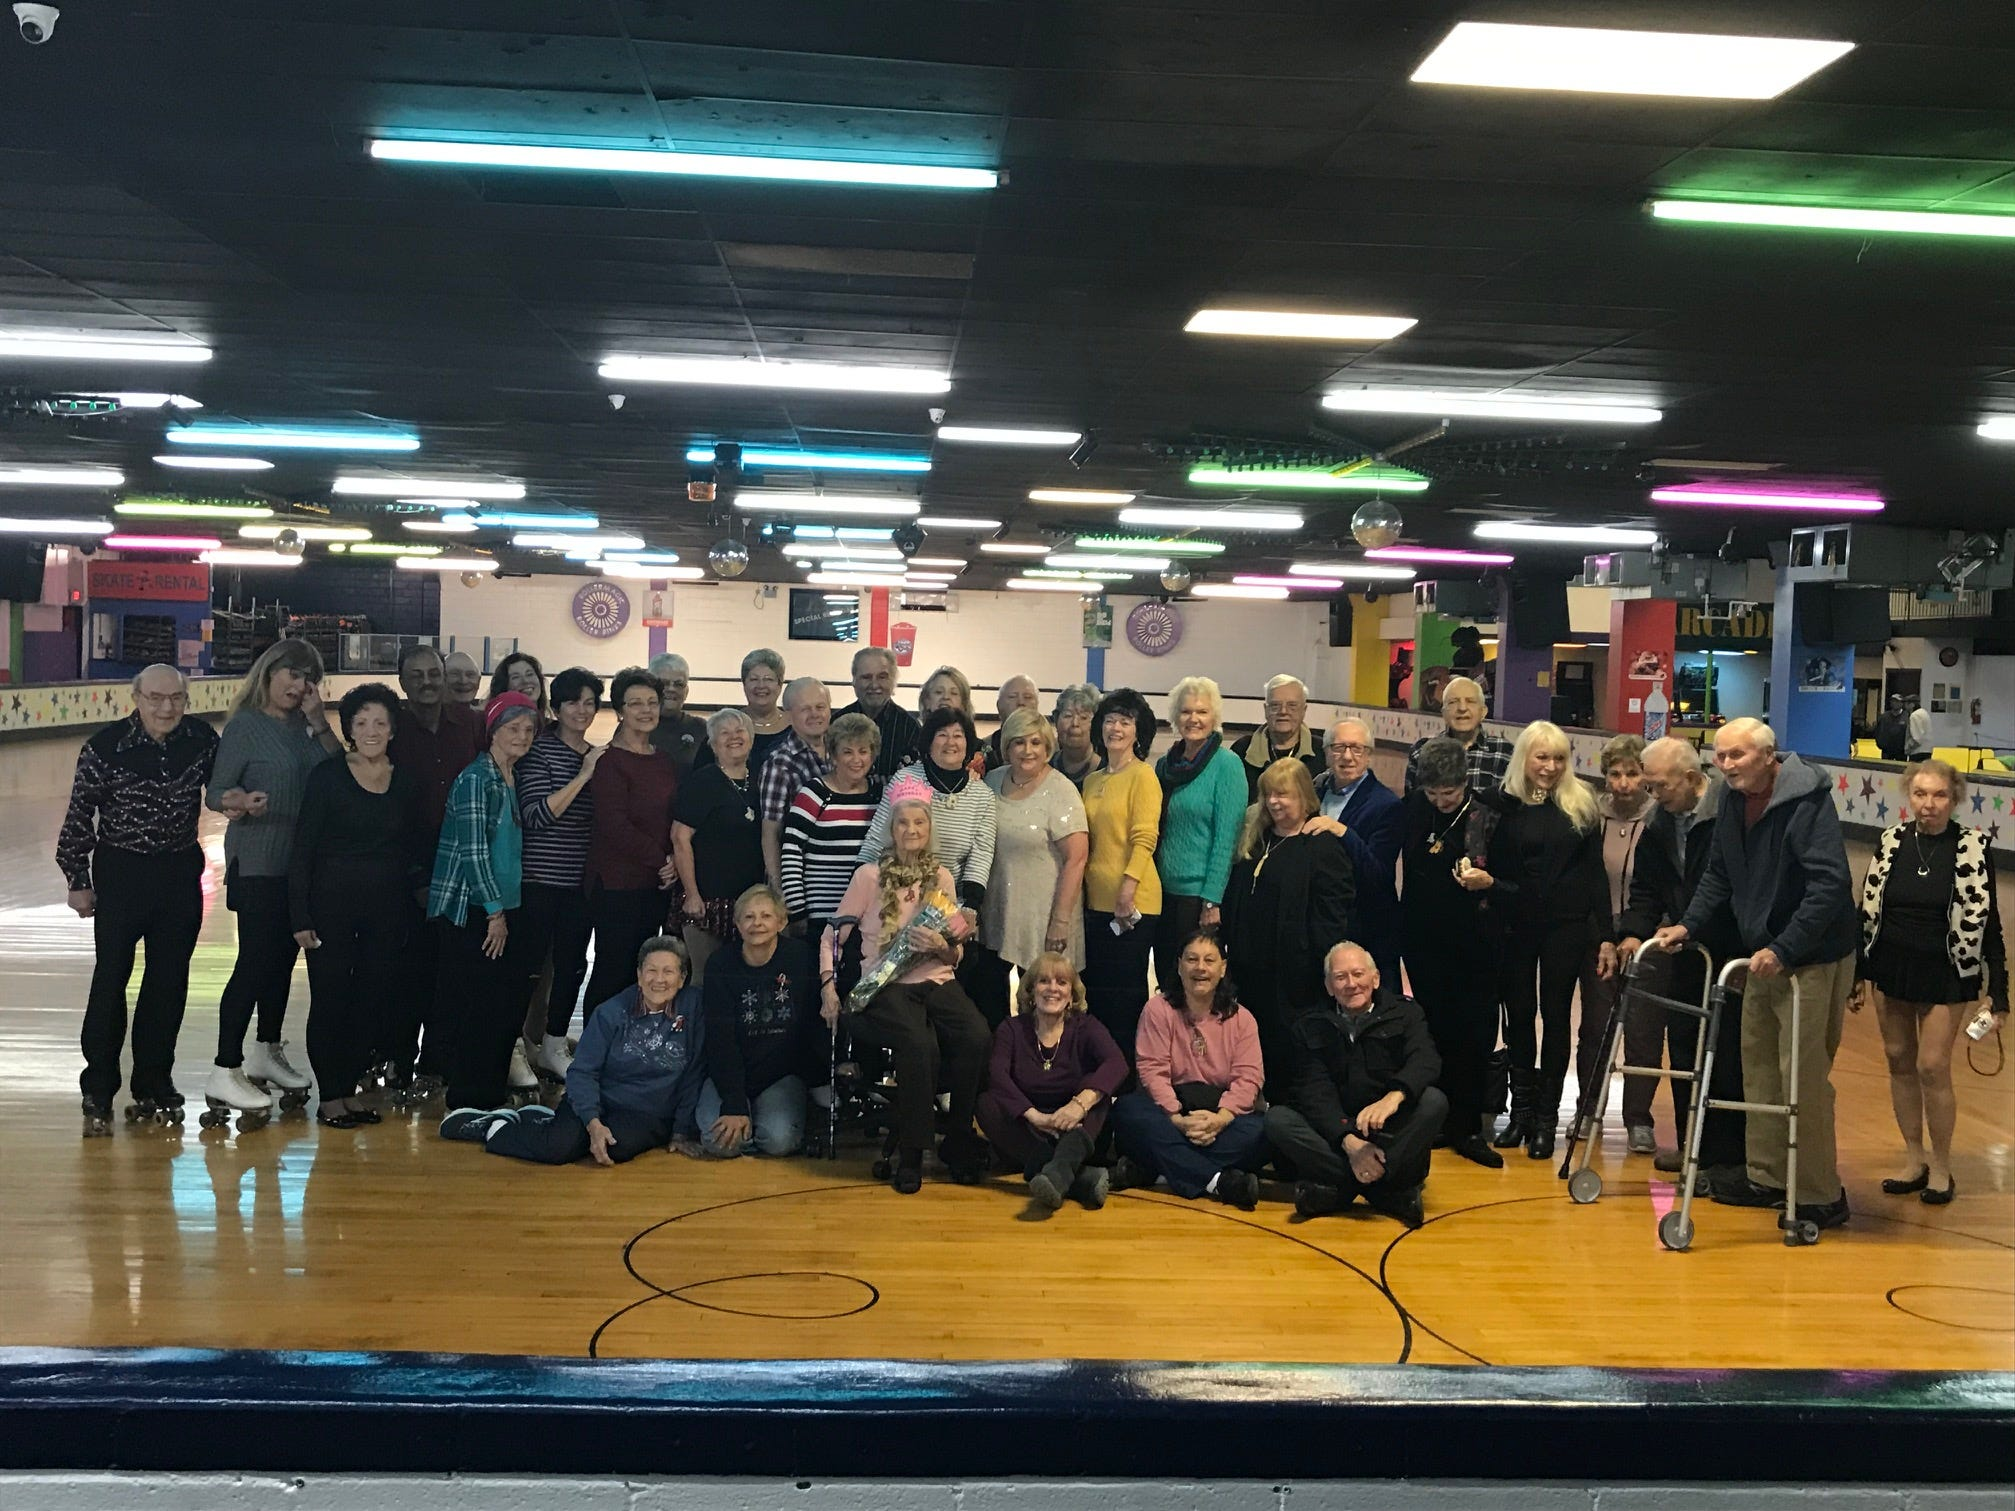 Carrie Callandrullo (center) celebrated her 100th birthday Nov. 14 with her friends at the skating rink.At least twice a week, more than 20 seniors regularly gather at South Amboy Arenaand take to the rink for a couple hours of roller skating. They range in age from 55 to 100.